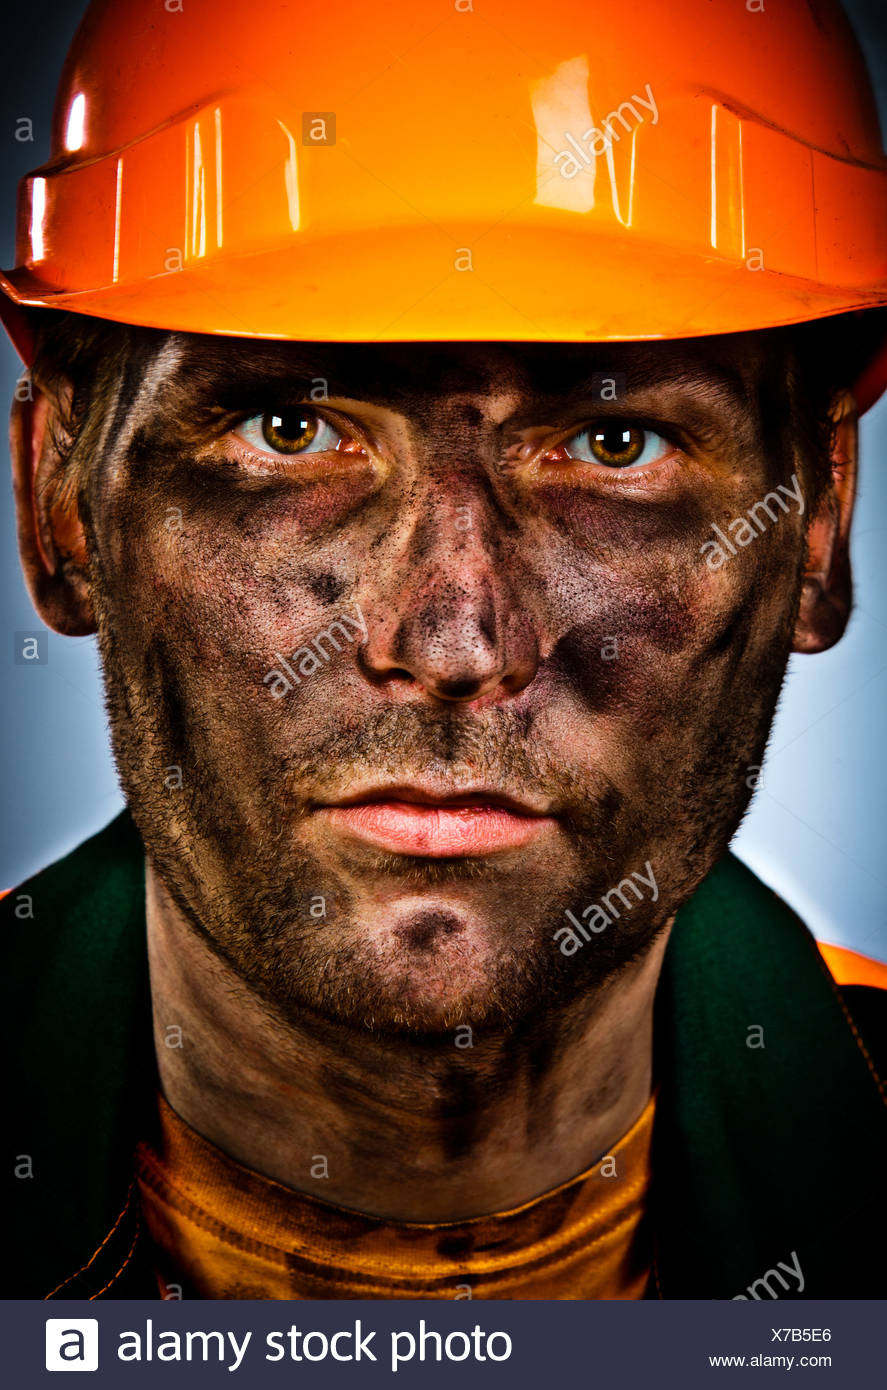 portrait oil industry worker - Stock Image